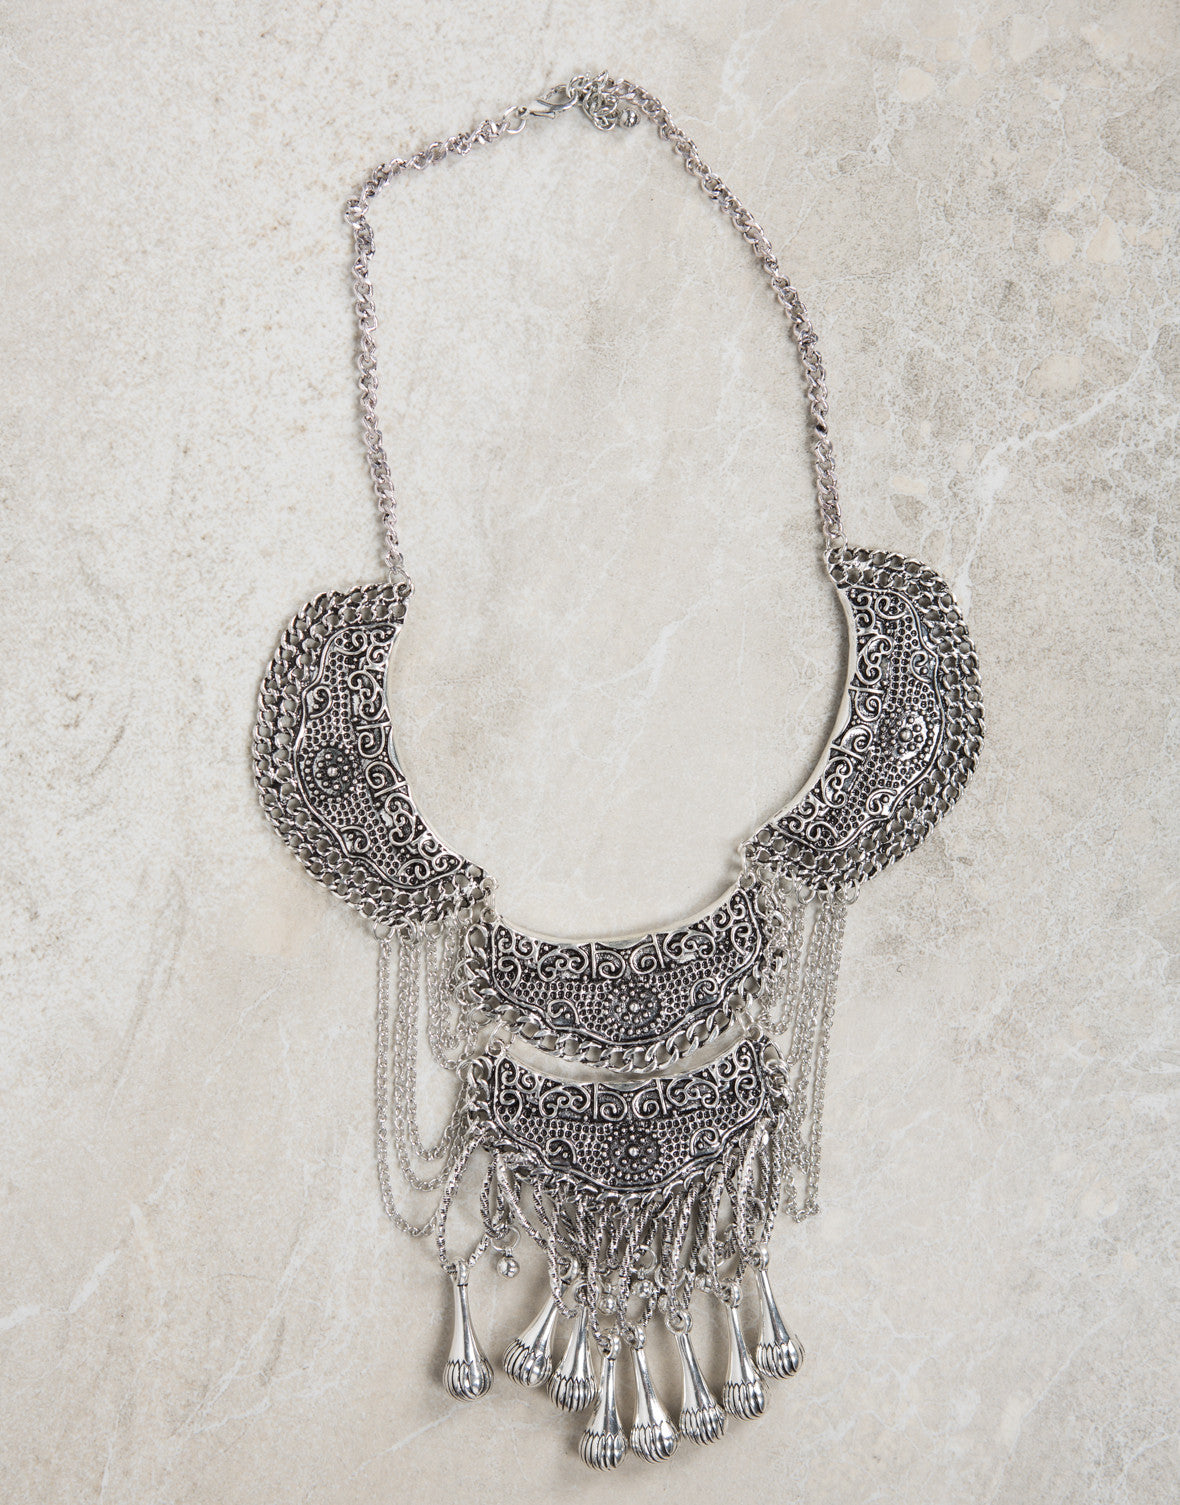 Detailed Chandelier Necklace